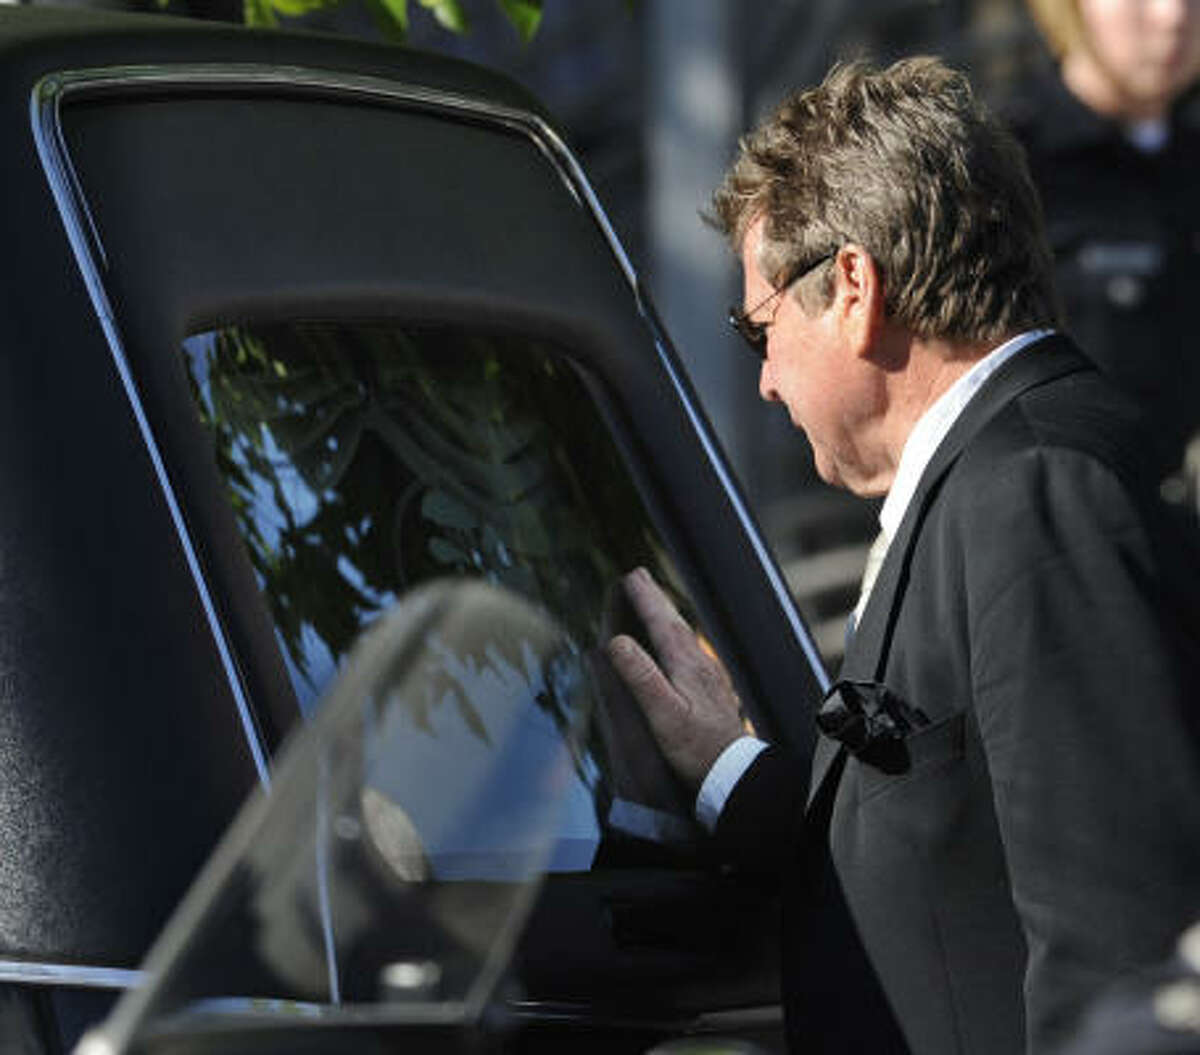 O'Neal touches the back of the hearse carrying Fawcett's casket after her funeral service.